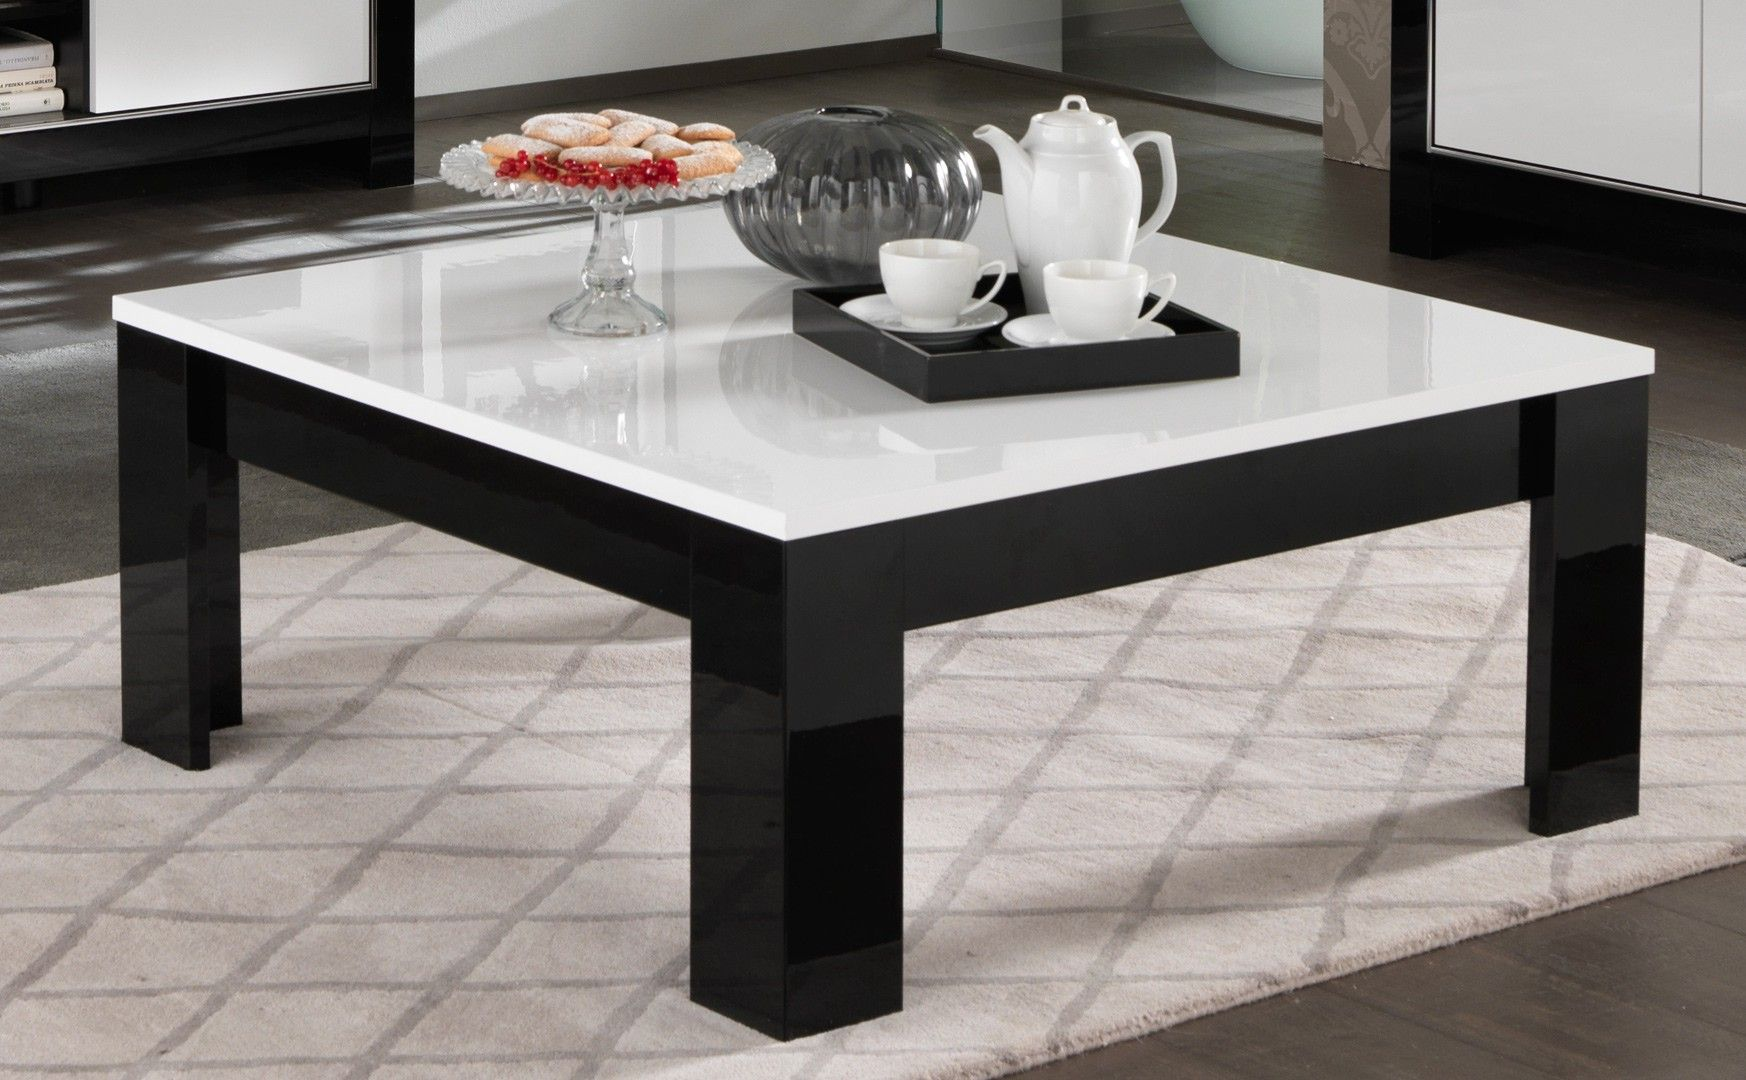 Table Basse Carrée Design Laquée Blancnoir Savana Tables Basses